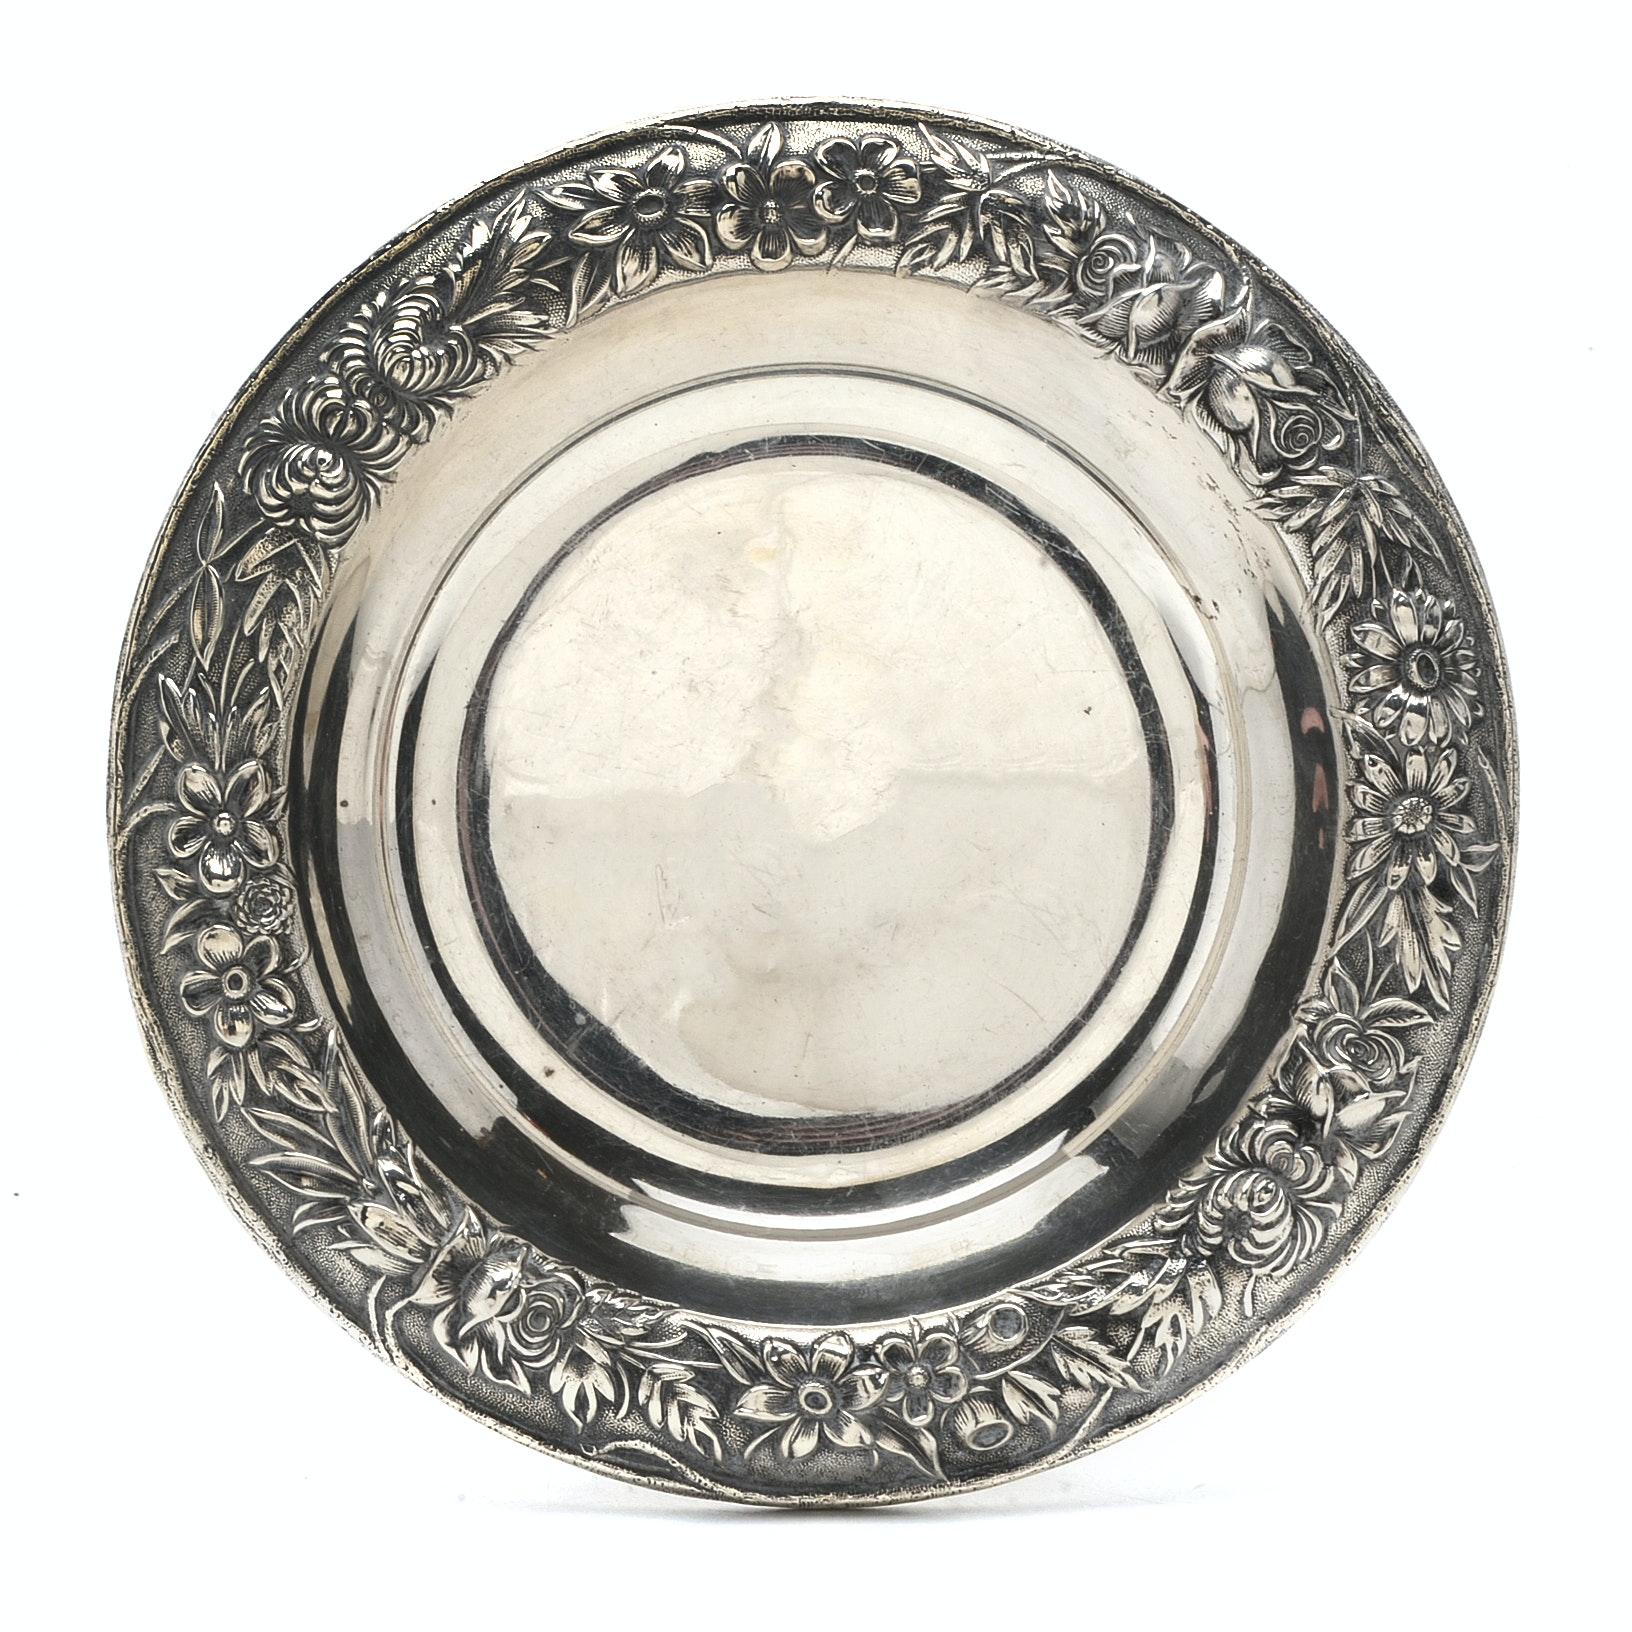 S. Kirk & Son Sterling Silver Wine Coaster